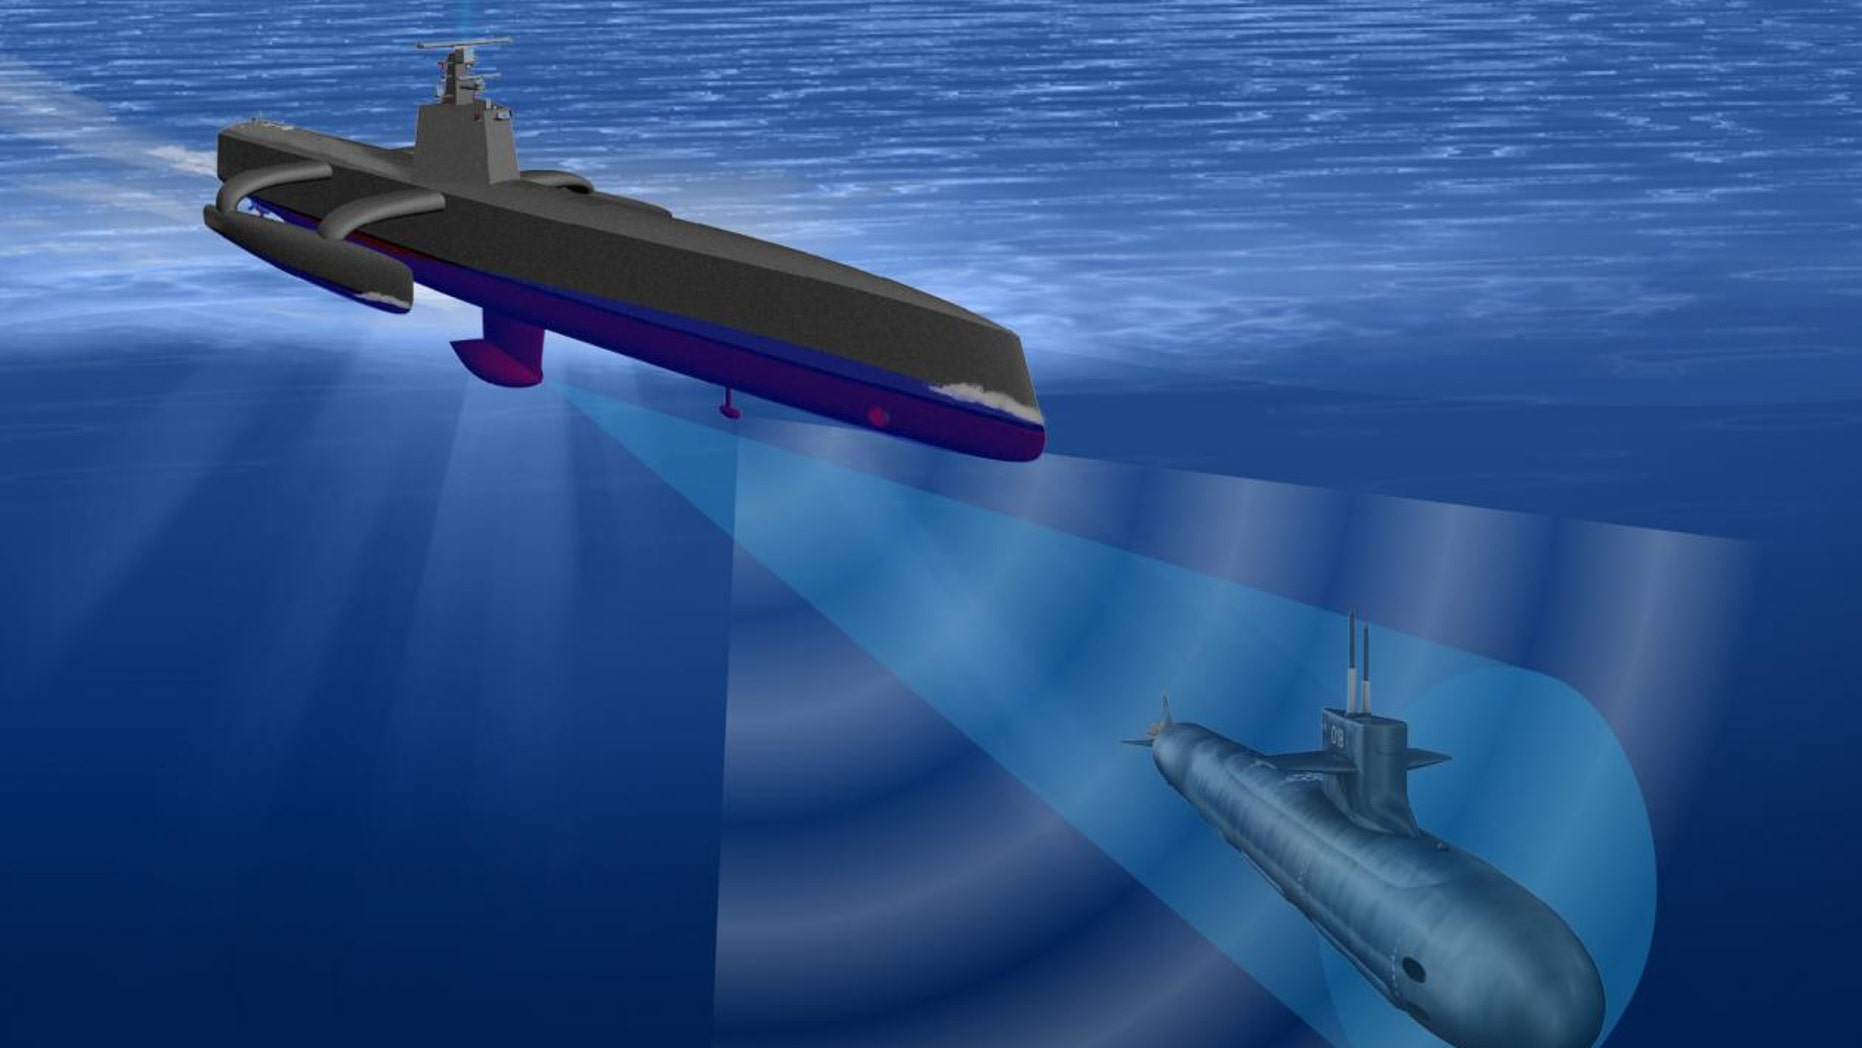 DARPA illustration of a Sea Hunter drone.